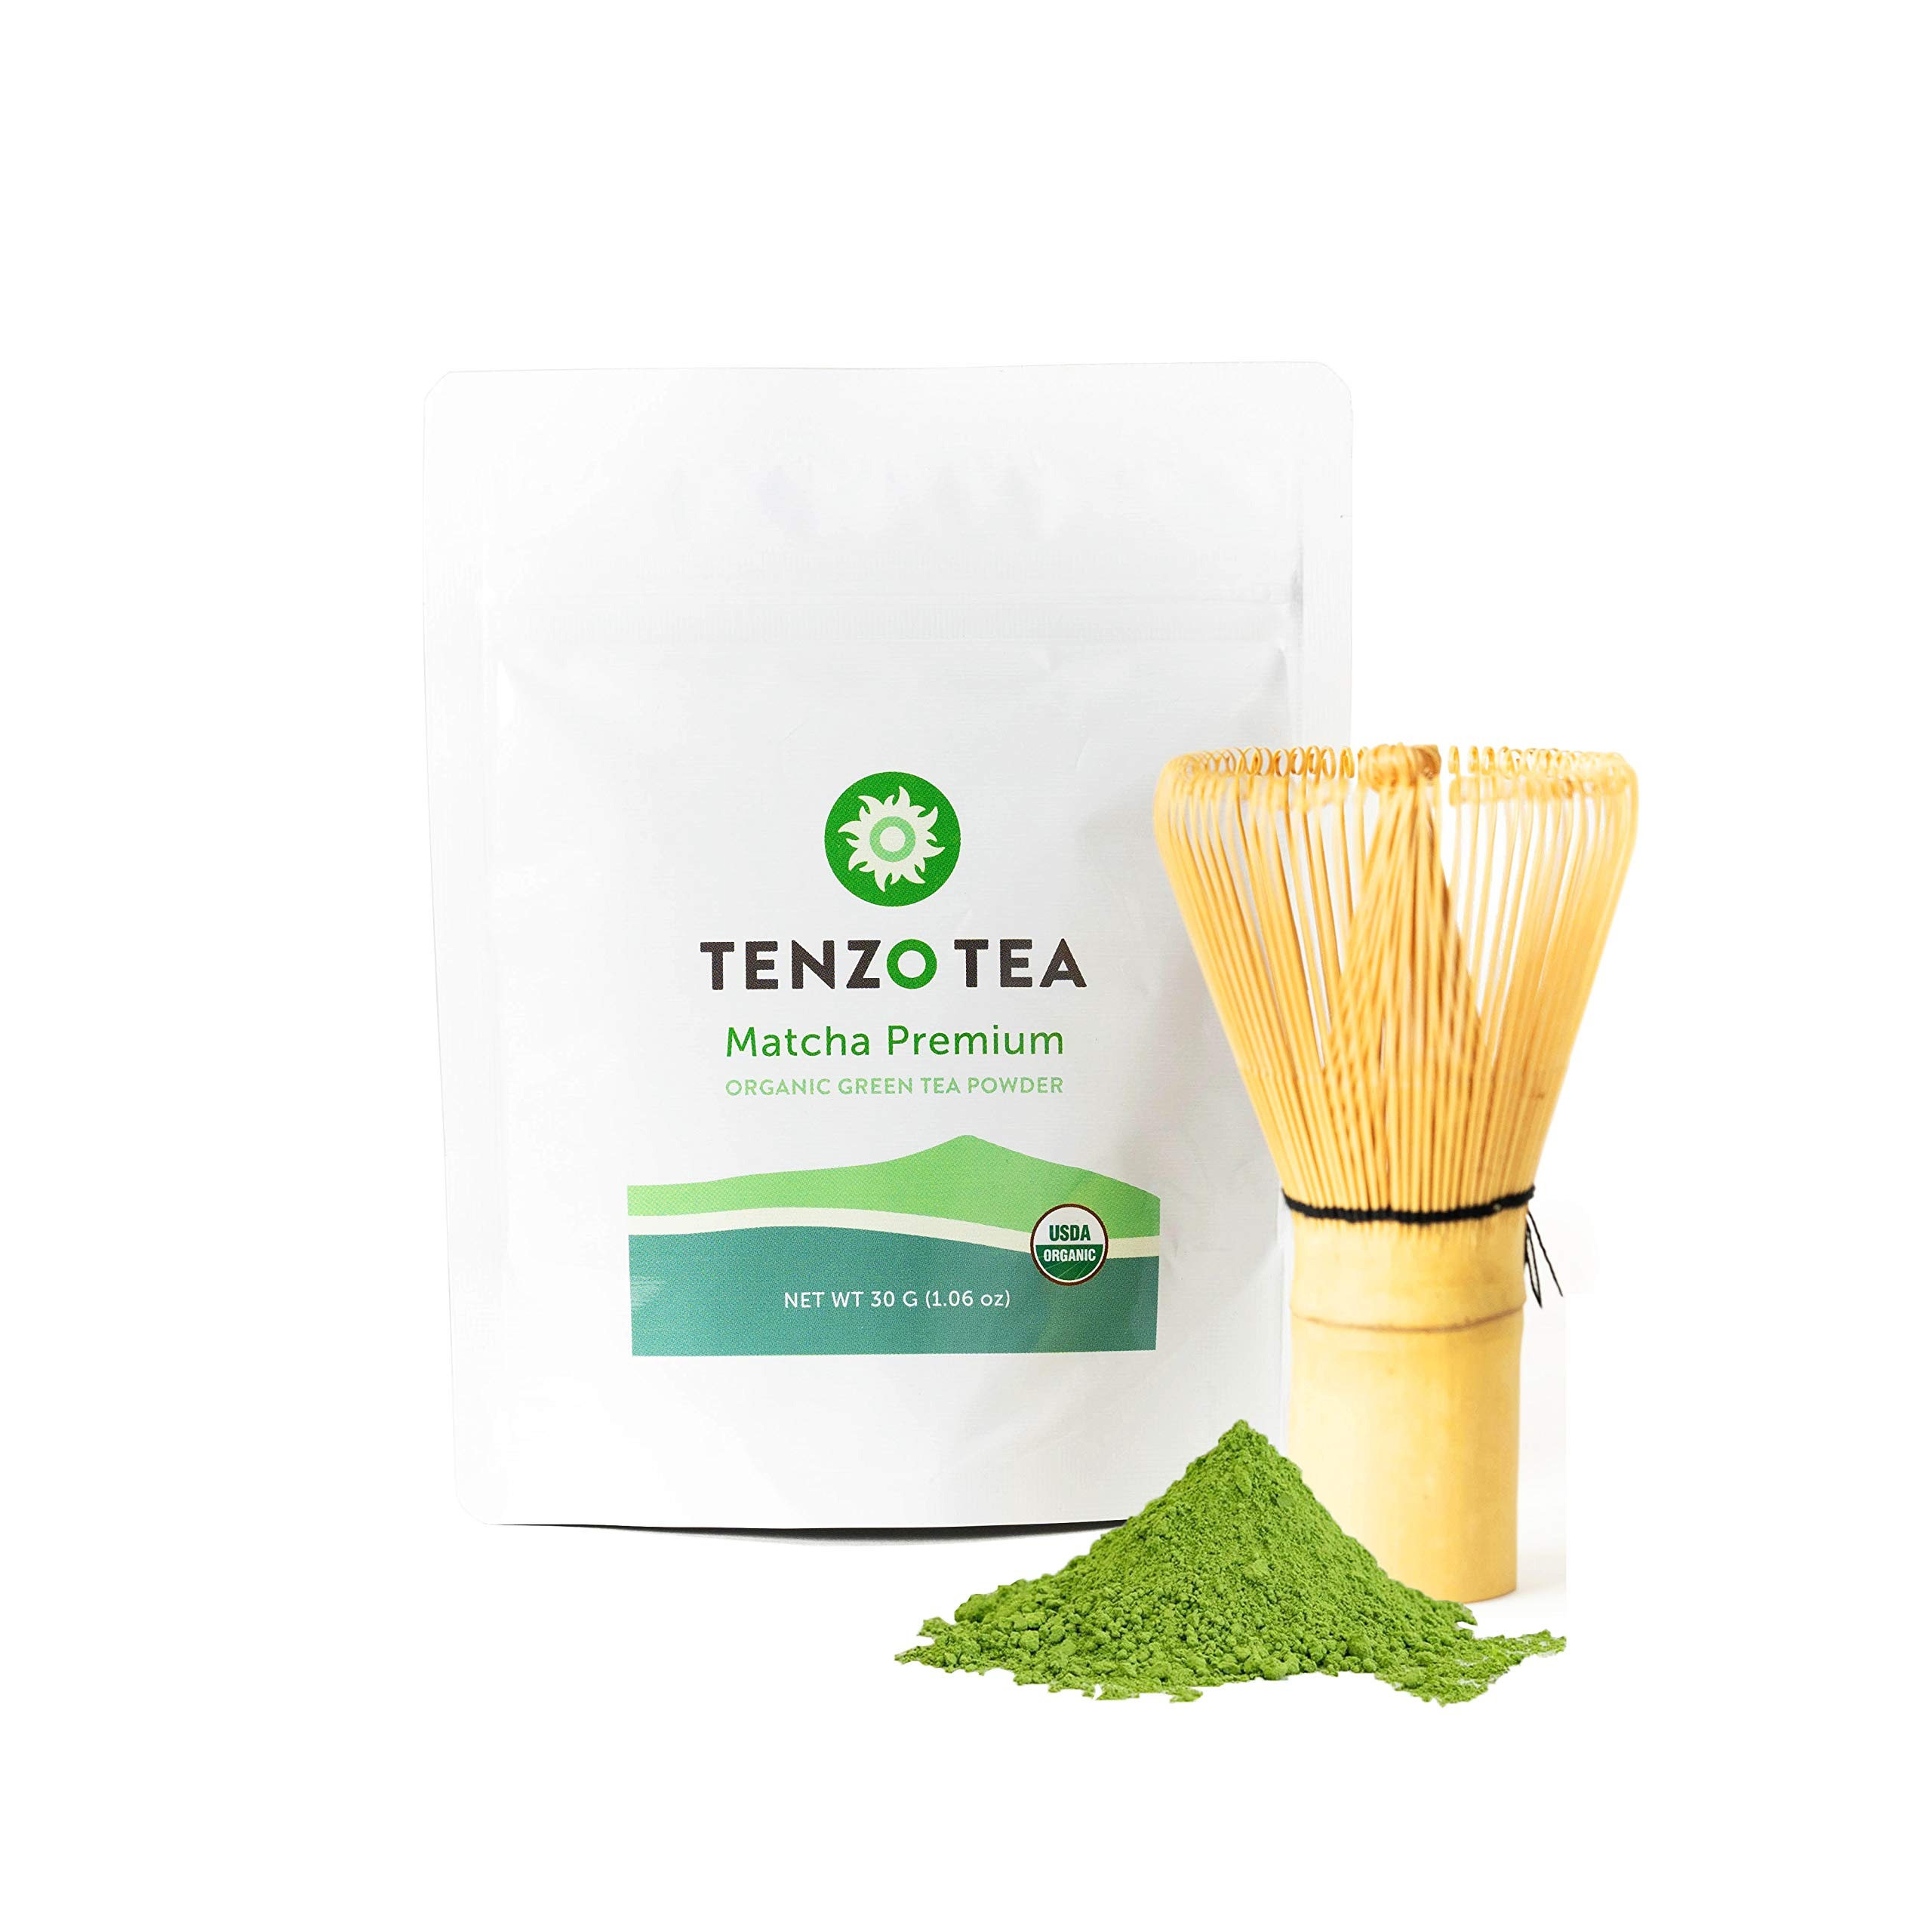 Tenzo Tea (Whisk Included in Box) - Ceremonial Grade Matcha Green Tea Powder (For Sipping as Tea) - USDA Organic, Kosher, Vegan, Paleo/Keto Friendly (30 Gram + Whisk)